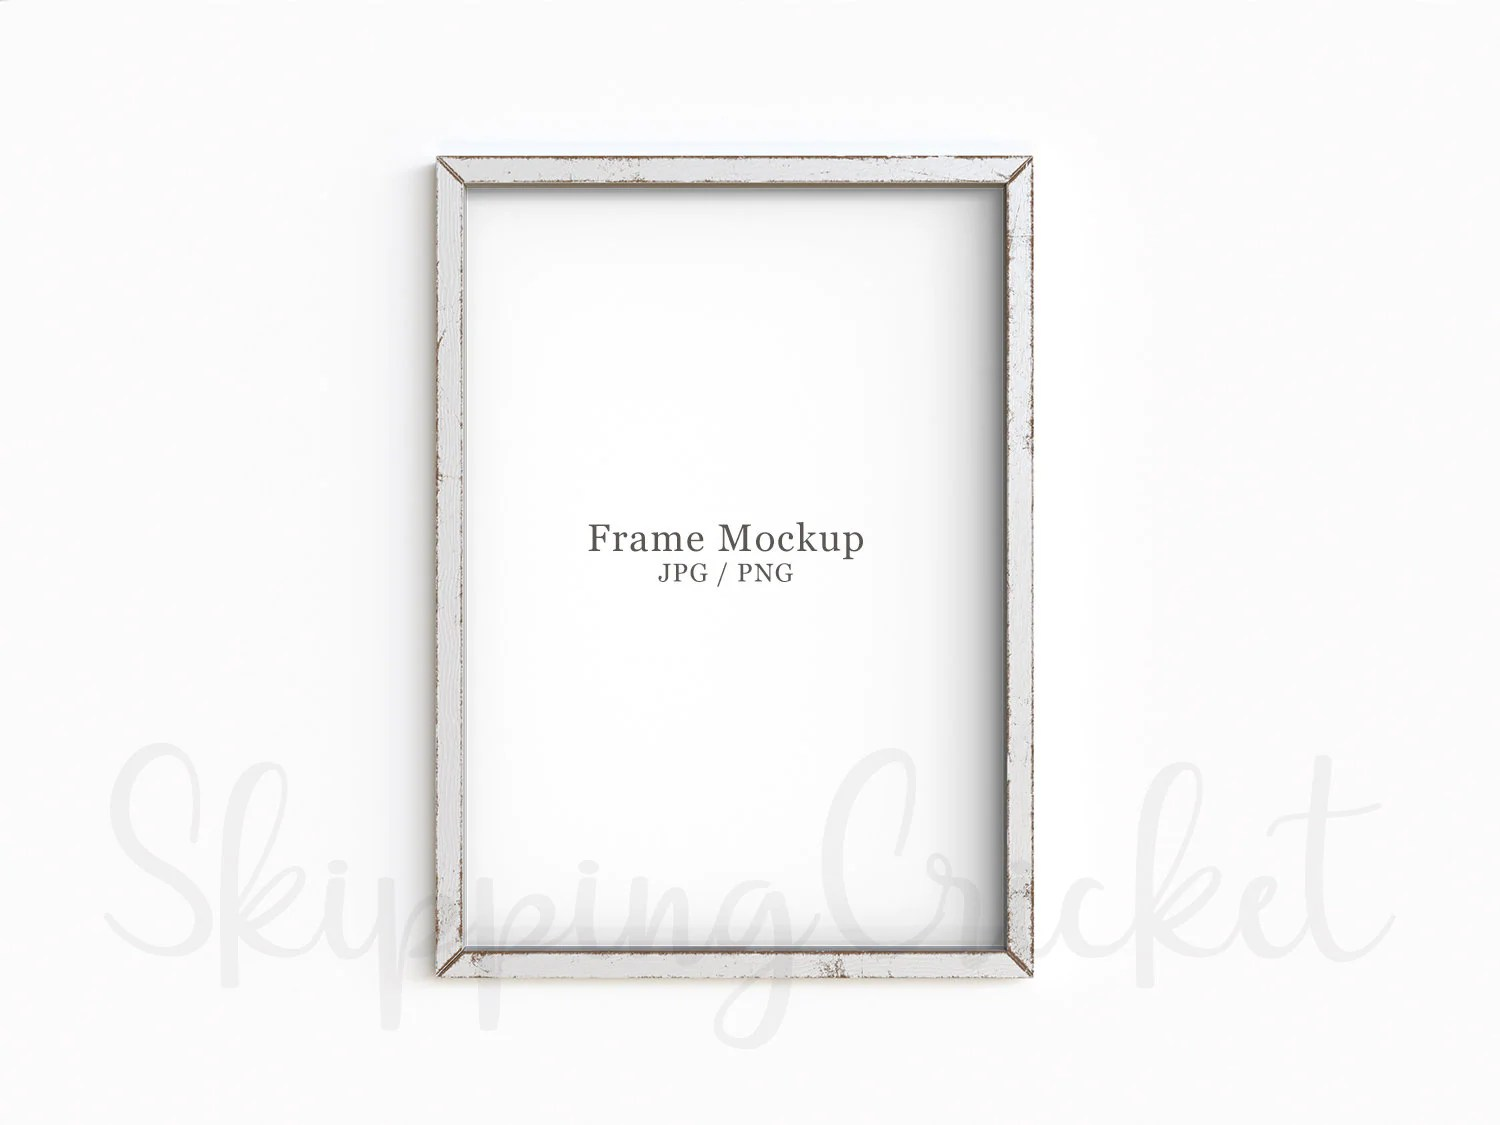 A2 White Frame A2 A3 A4 Minimalist White Frame Mockup Simple Frame Mockup On Wooden Wall Farmhouse Western Rustic White Frame Mockup Digital Download